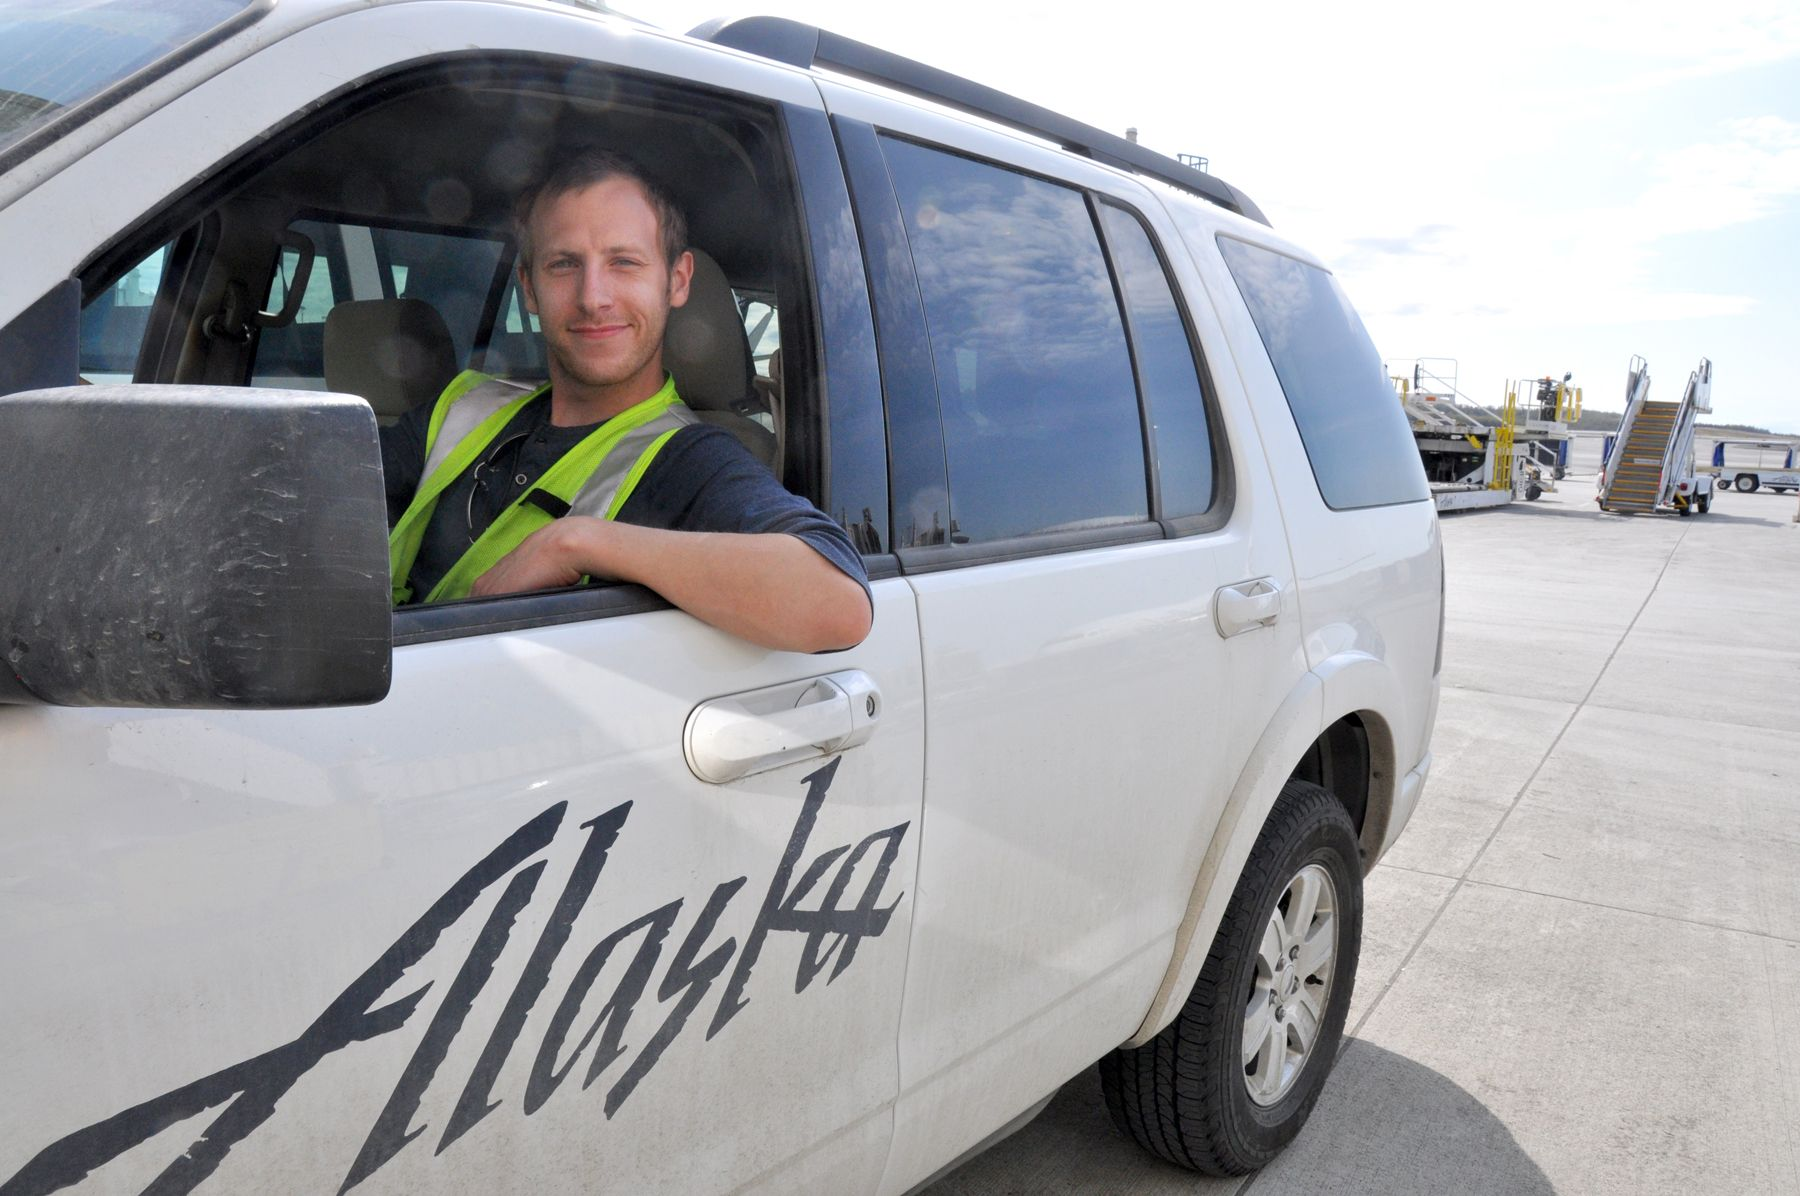 Alaska Airlines employee drives 5 hours to help customer